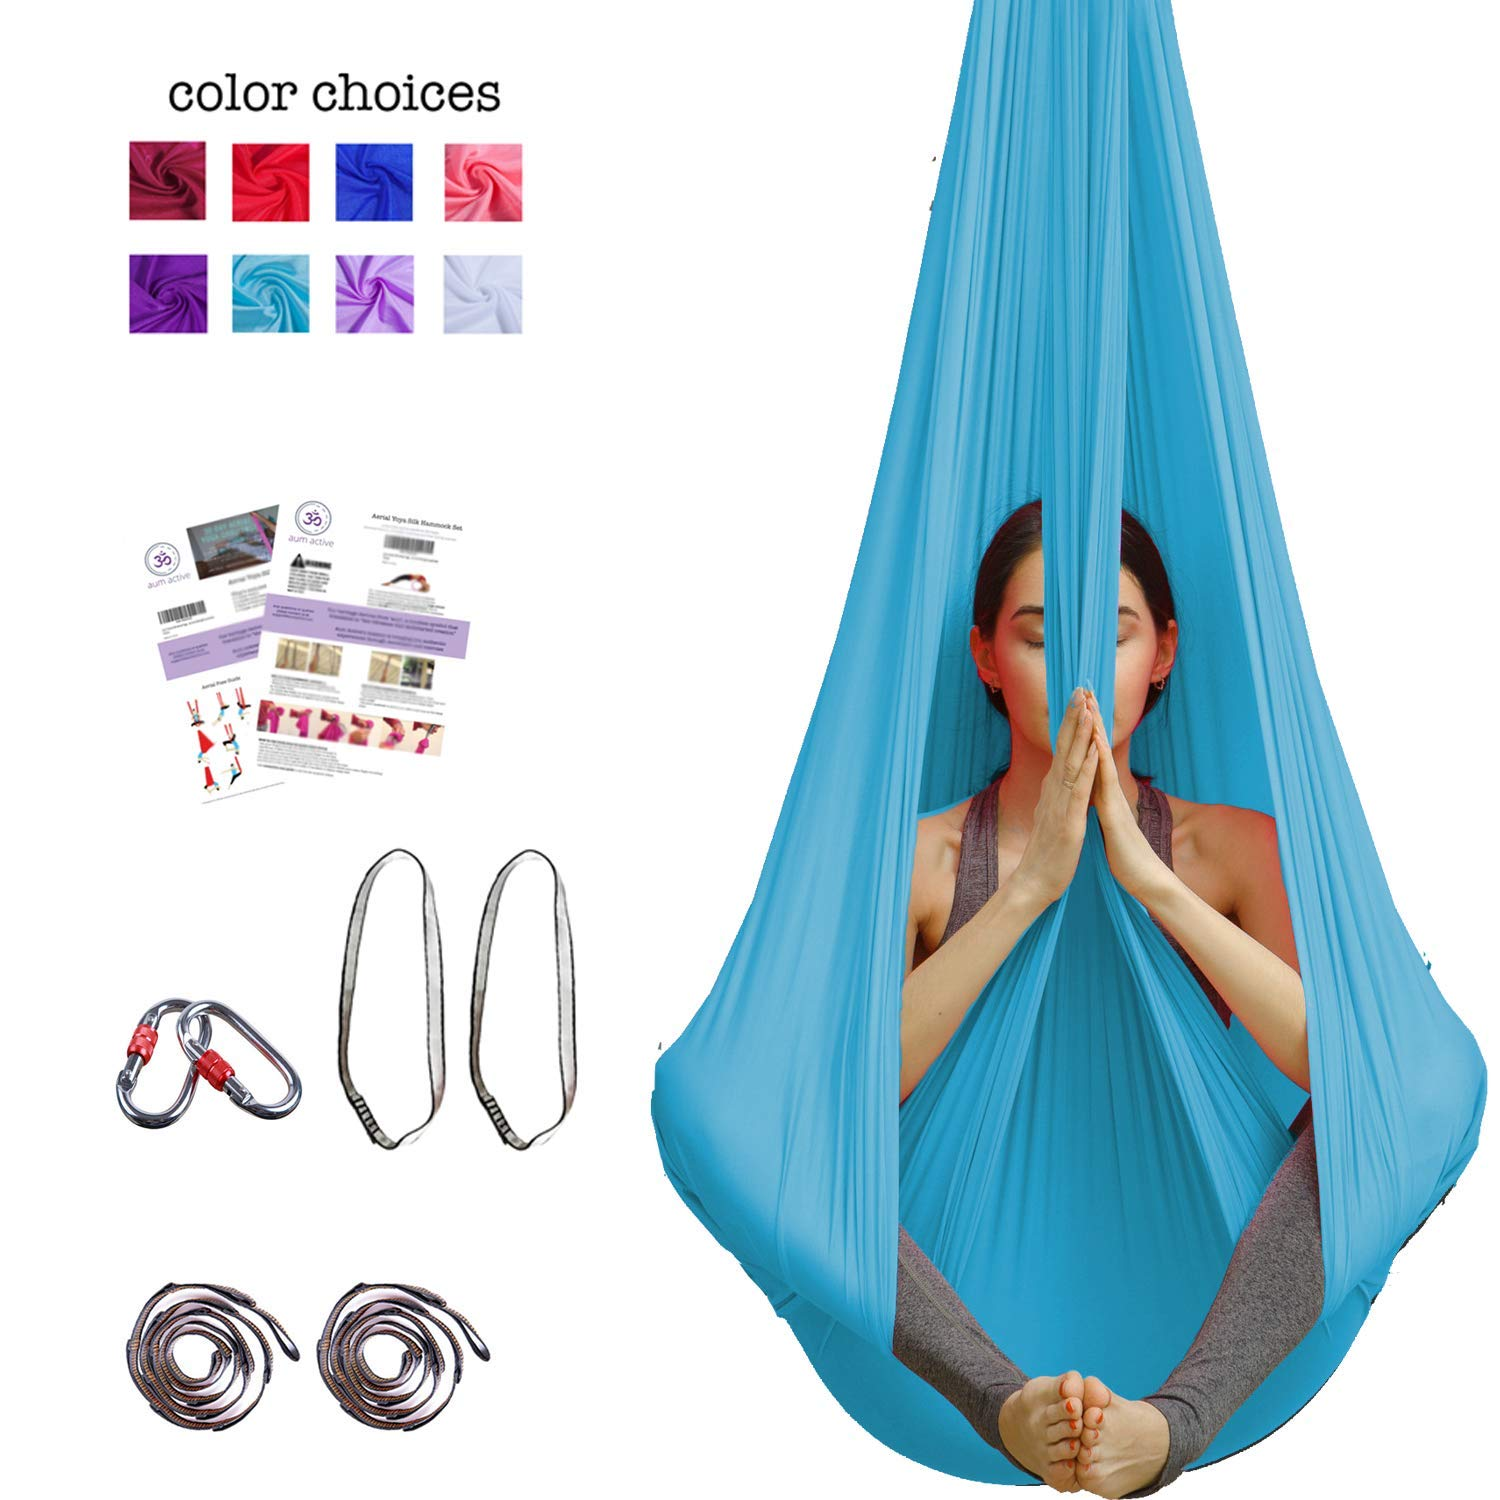 Aerial Yoga Hammock - Premium Aerial Silk Yoga Swing for Antigravity Yoga, Inversion Exercises, Improved Flexibility & Core Strength - Extension Straps, Carabiners and Pose Guide Included (sky blue)